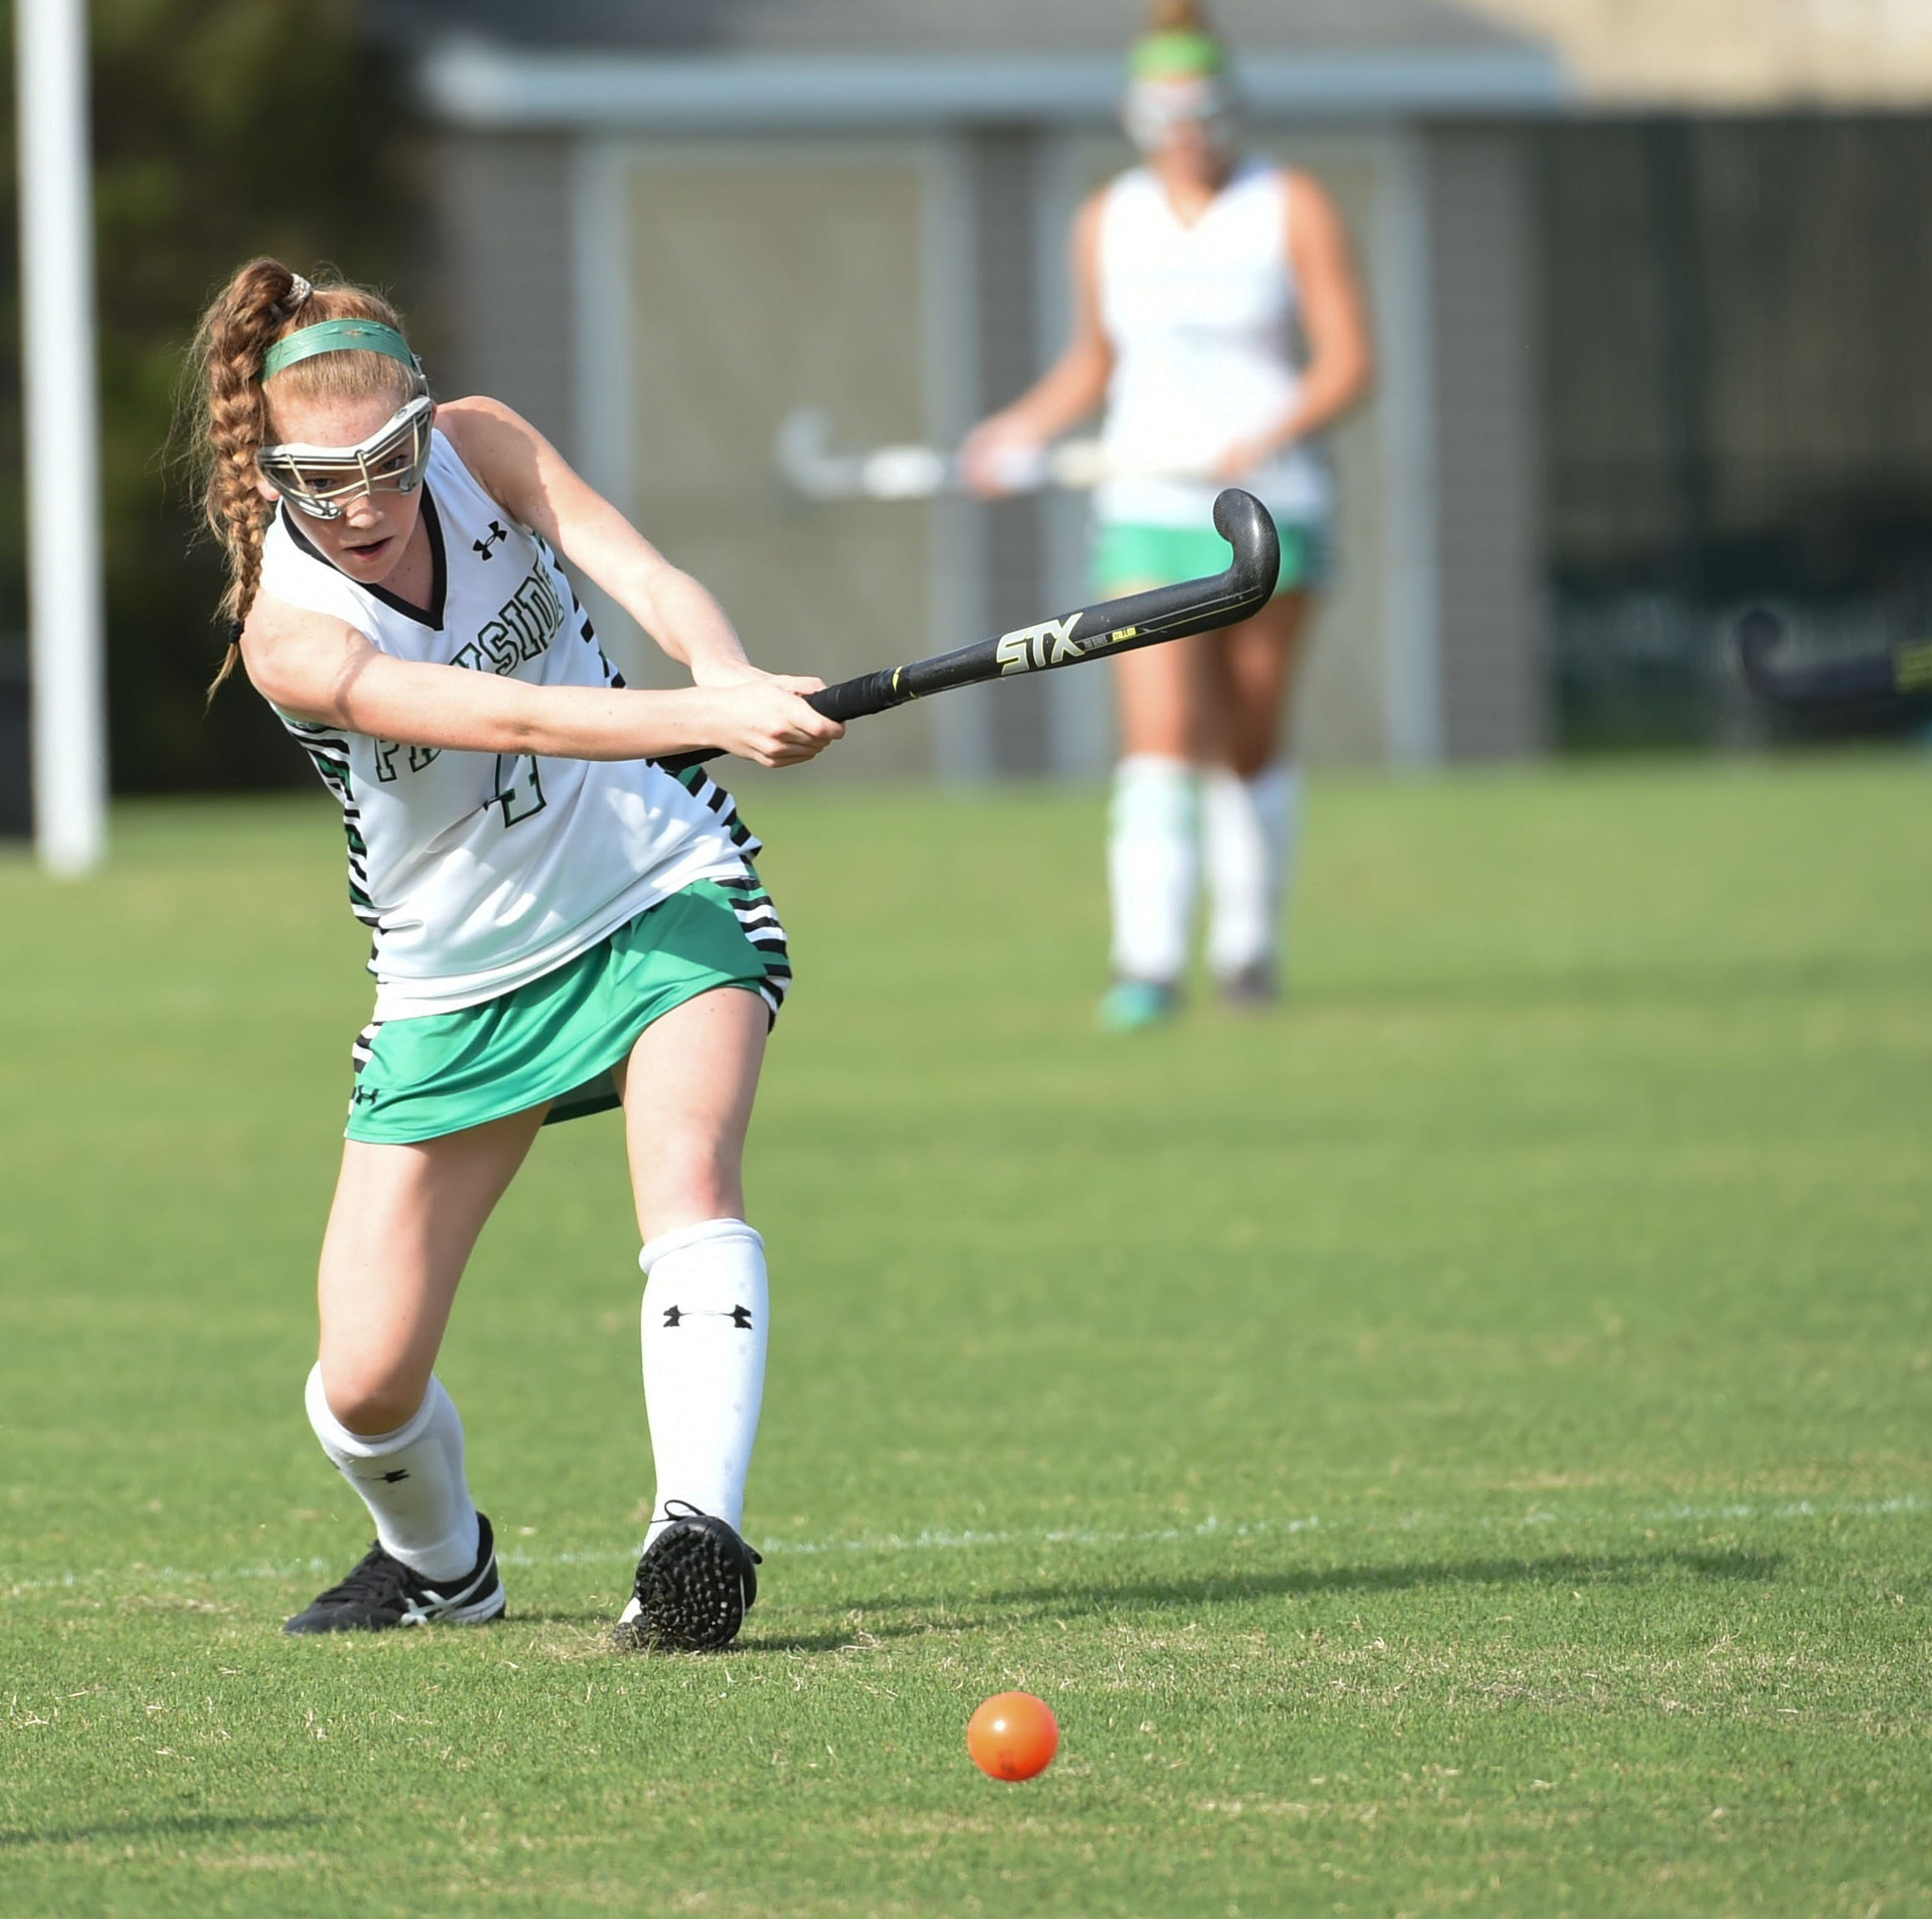 Undefeated Parkside field hockey team off to hot start